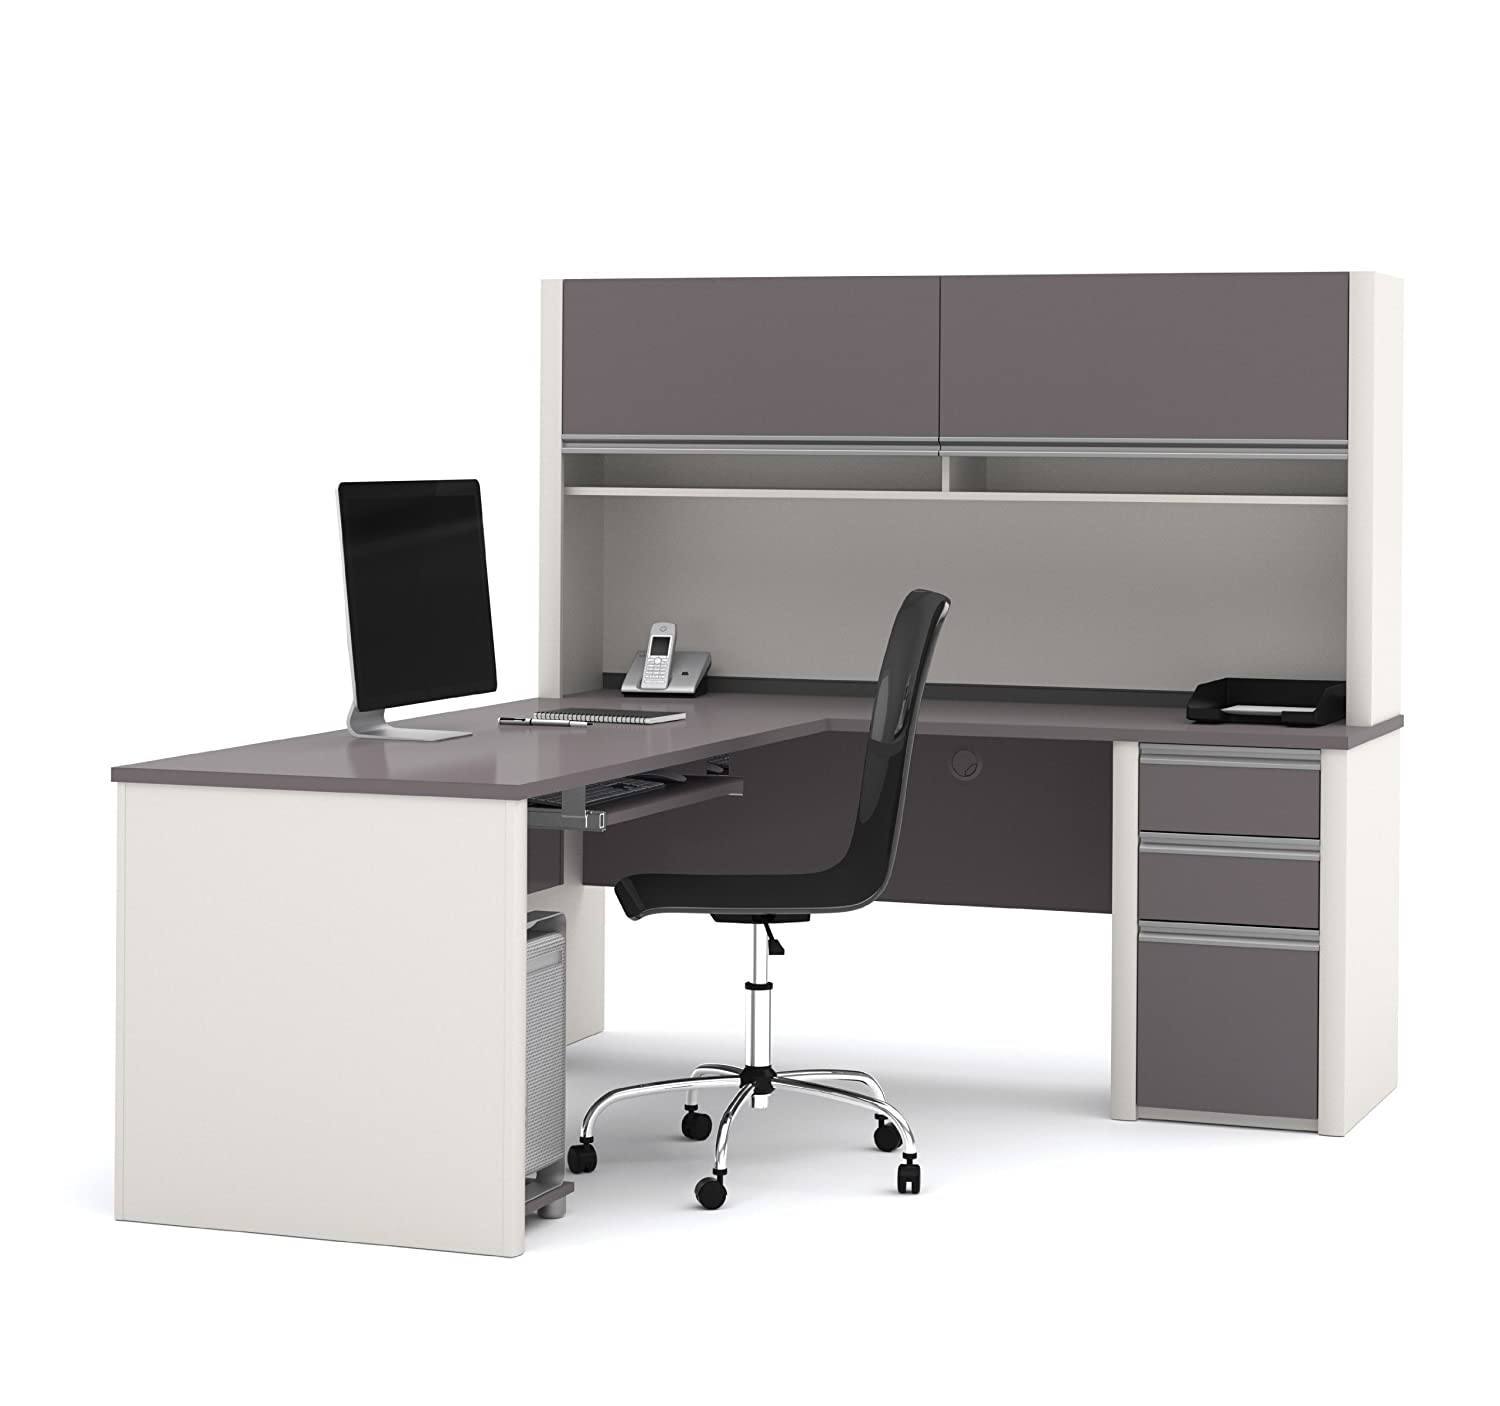 Bestar Office Furniture Connexion Collection Reversible L-Desk with Hutch - Slate-Sandstone